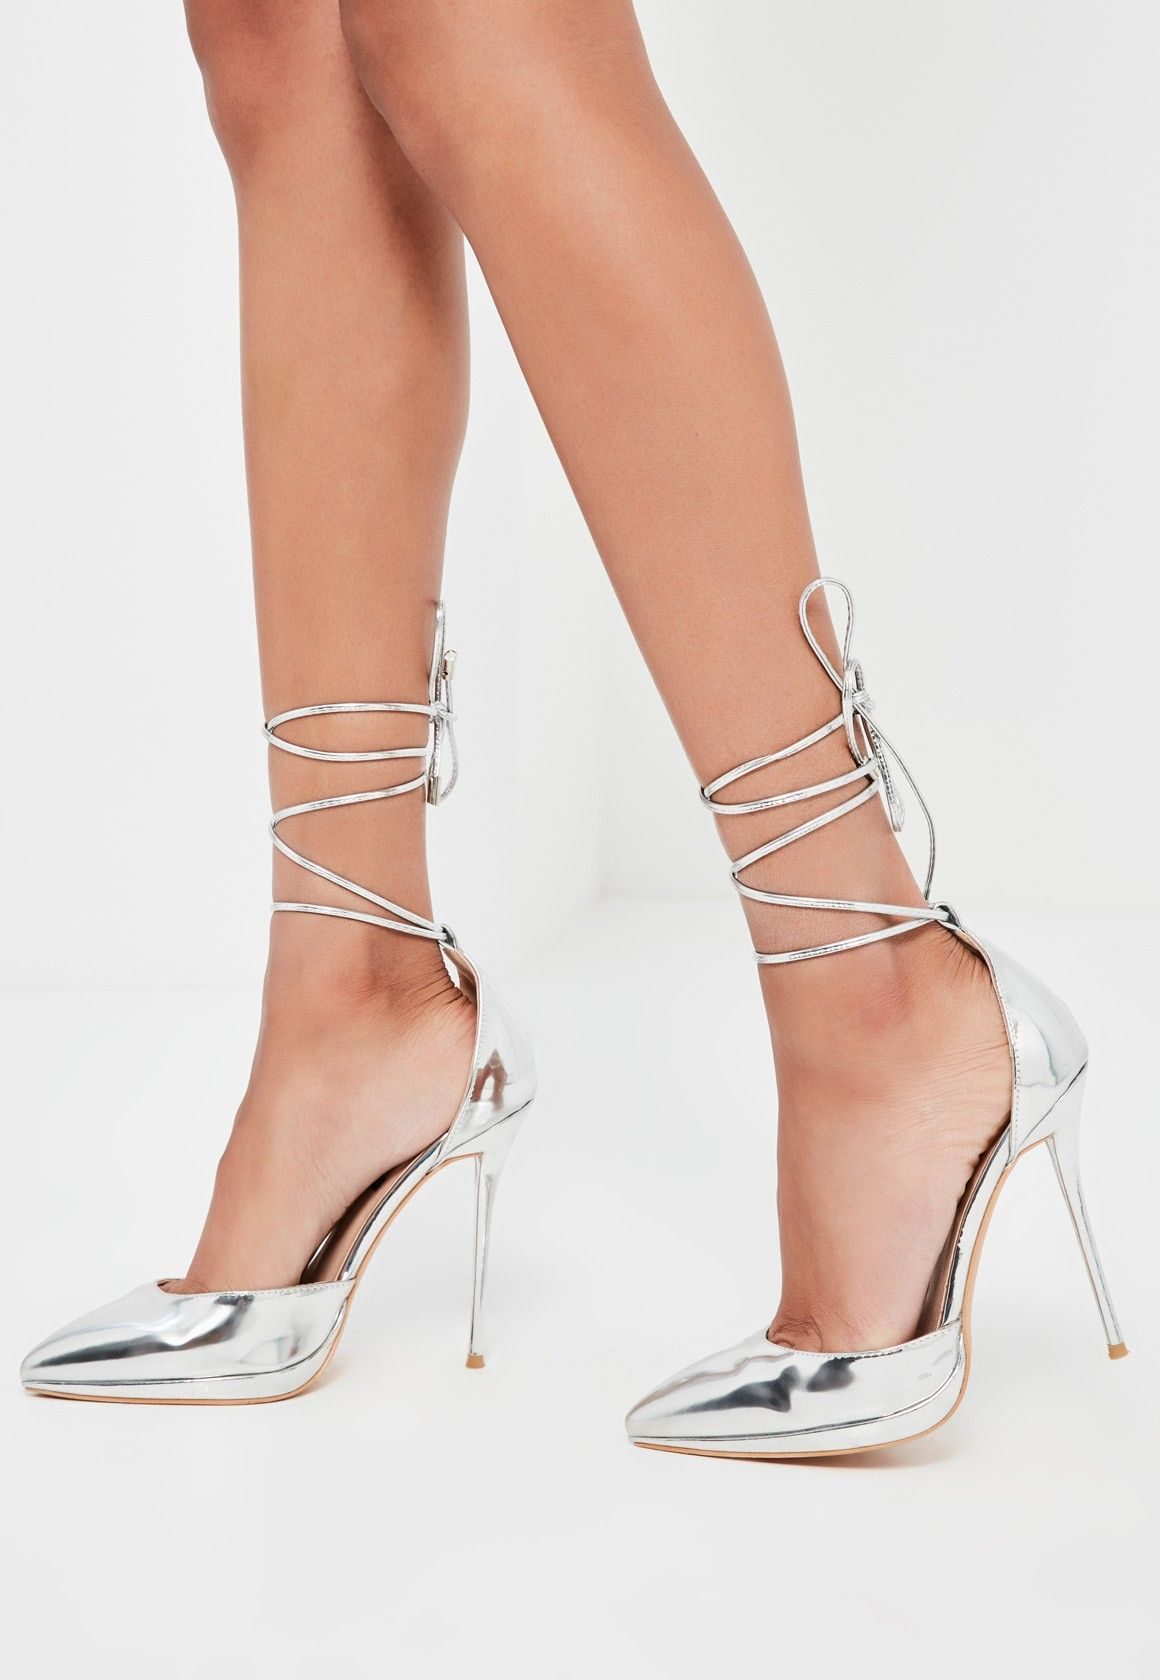 a35c768b251 Missguided - Peace Love Silver Lace Up Pumps